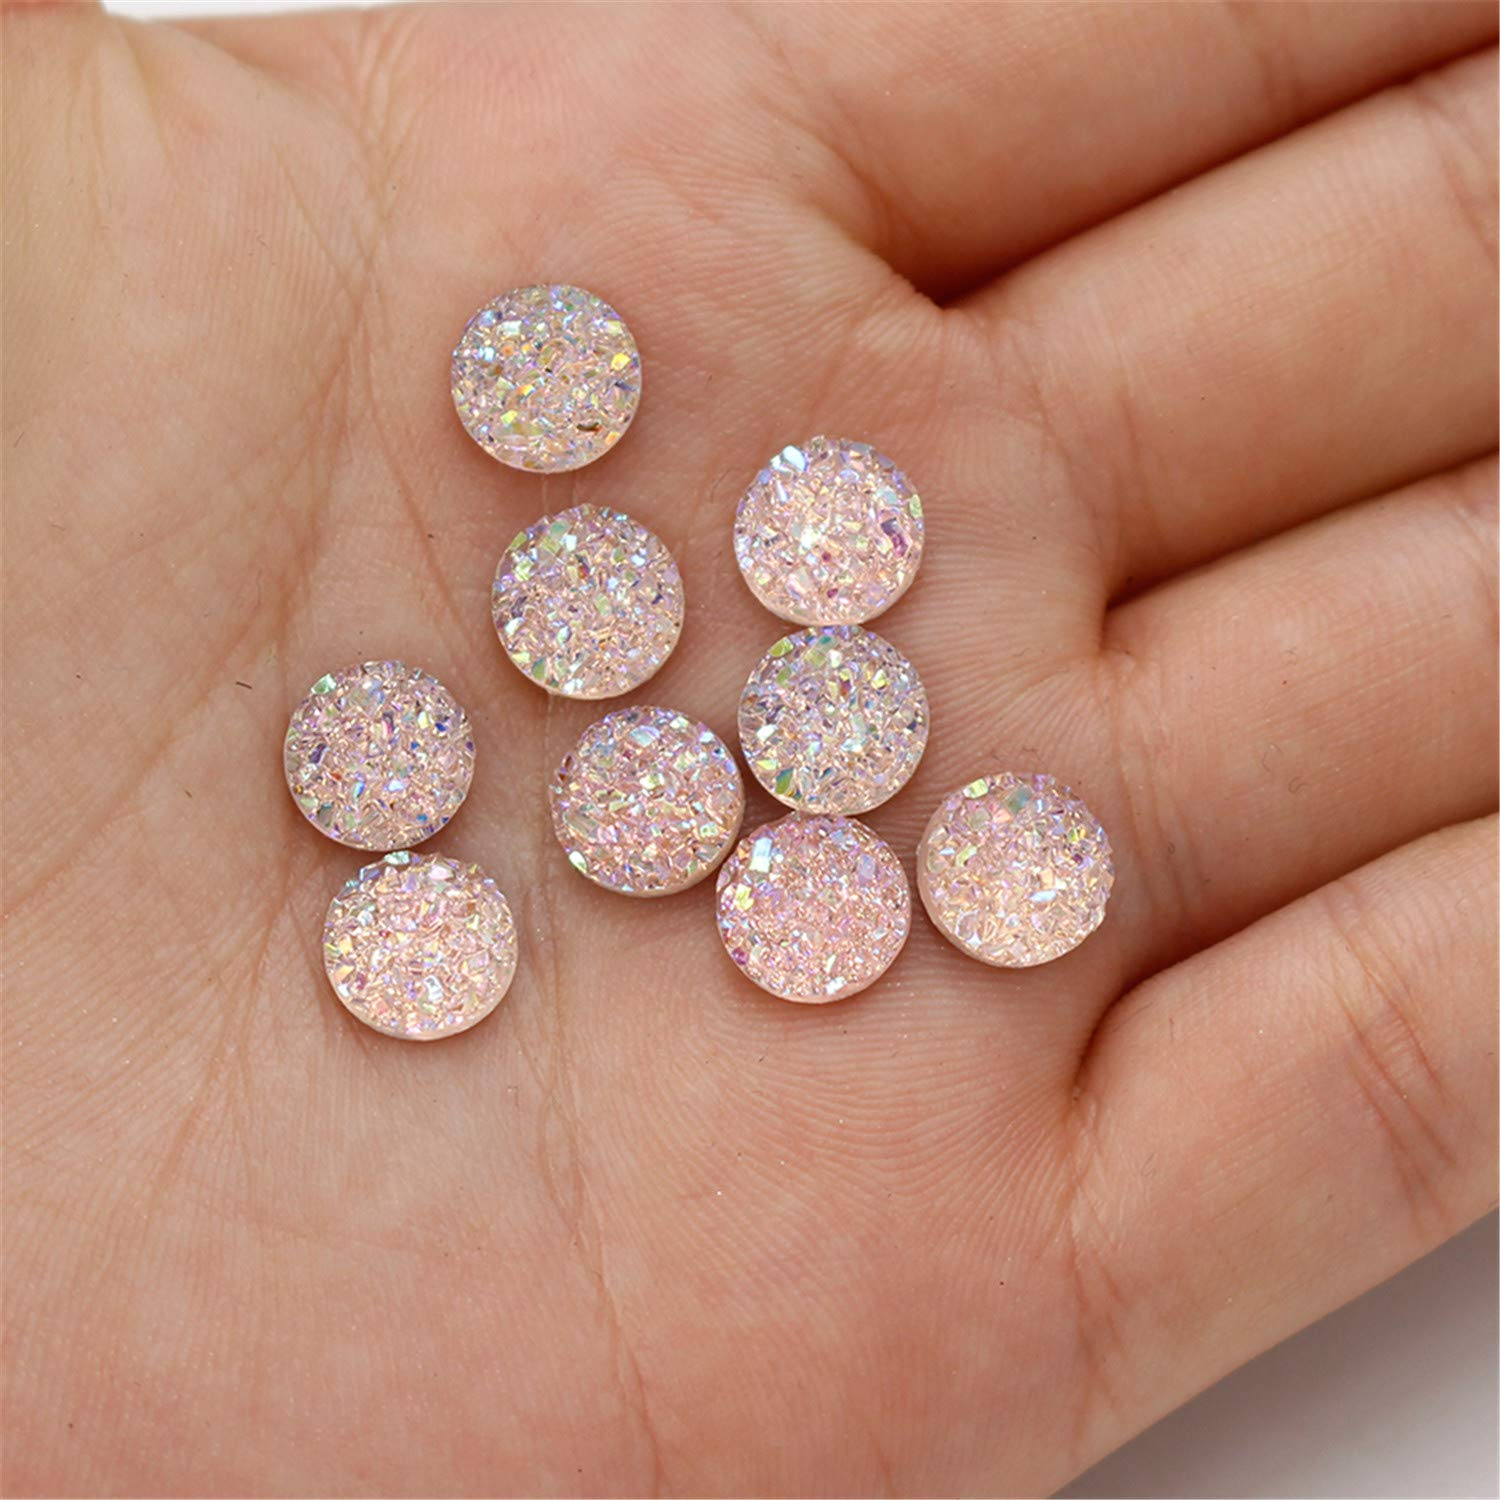 Alysee 200 Pieces Multi-color Round Resin Cabochon Flatback Druzy Iridescent Colorful Cabochons DIY Accessories 10mm